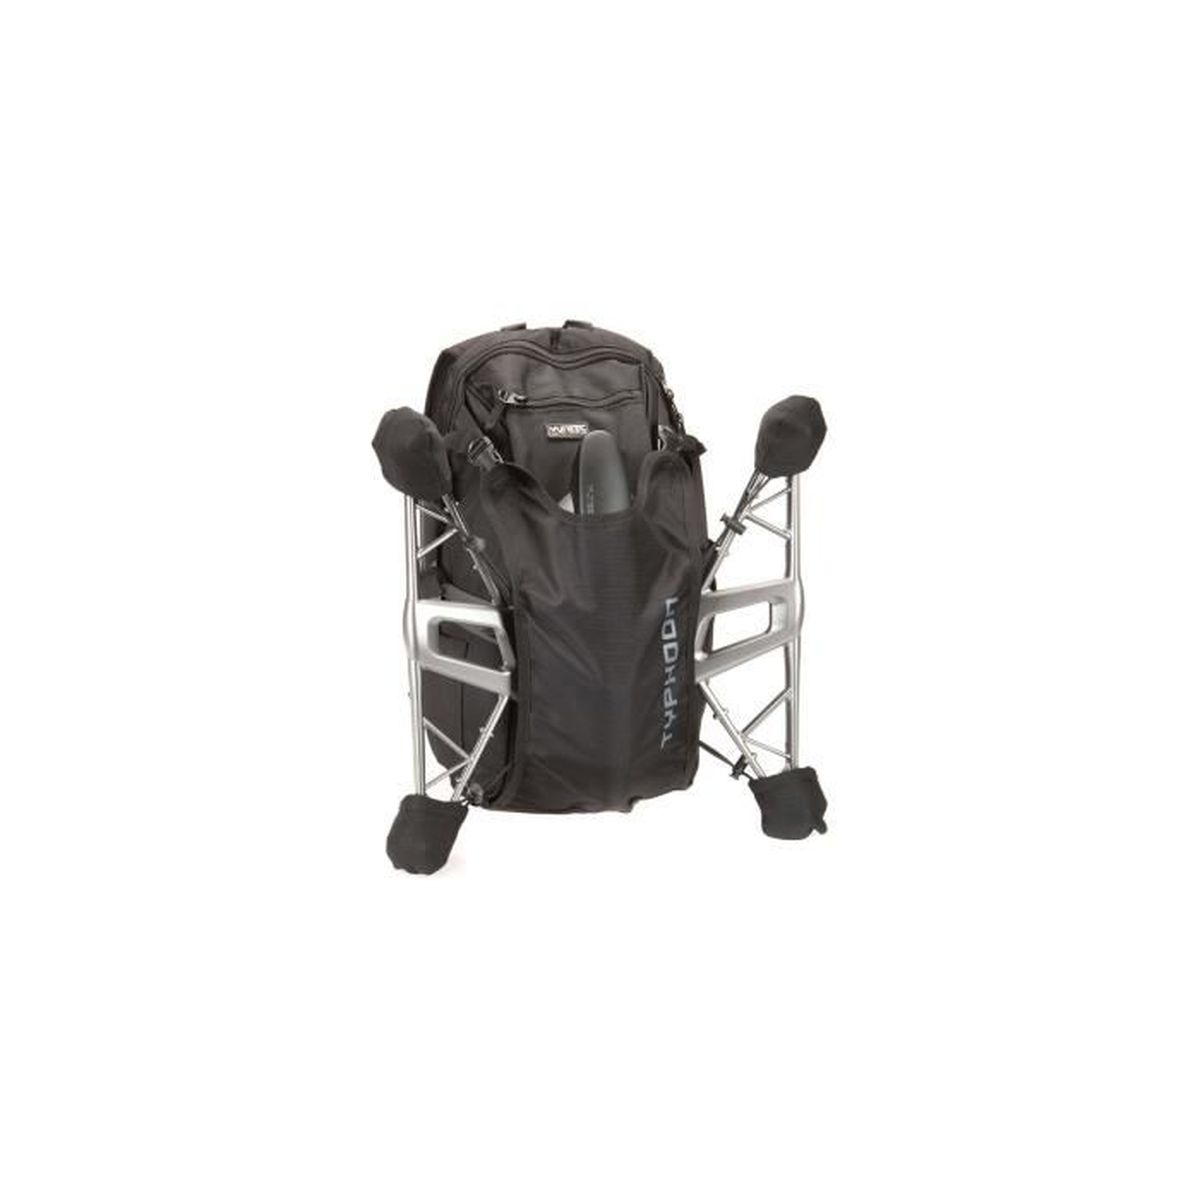 VALISE DE TRANSPORT Sac à dos Yuneec Backpack pour Yuneenc Typhoon Q50